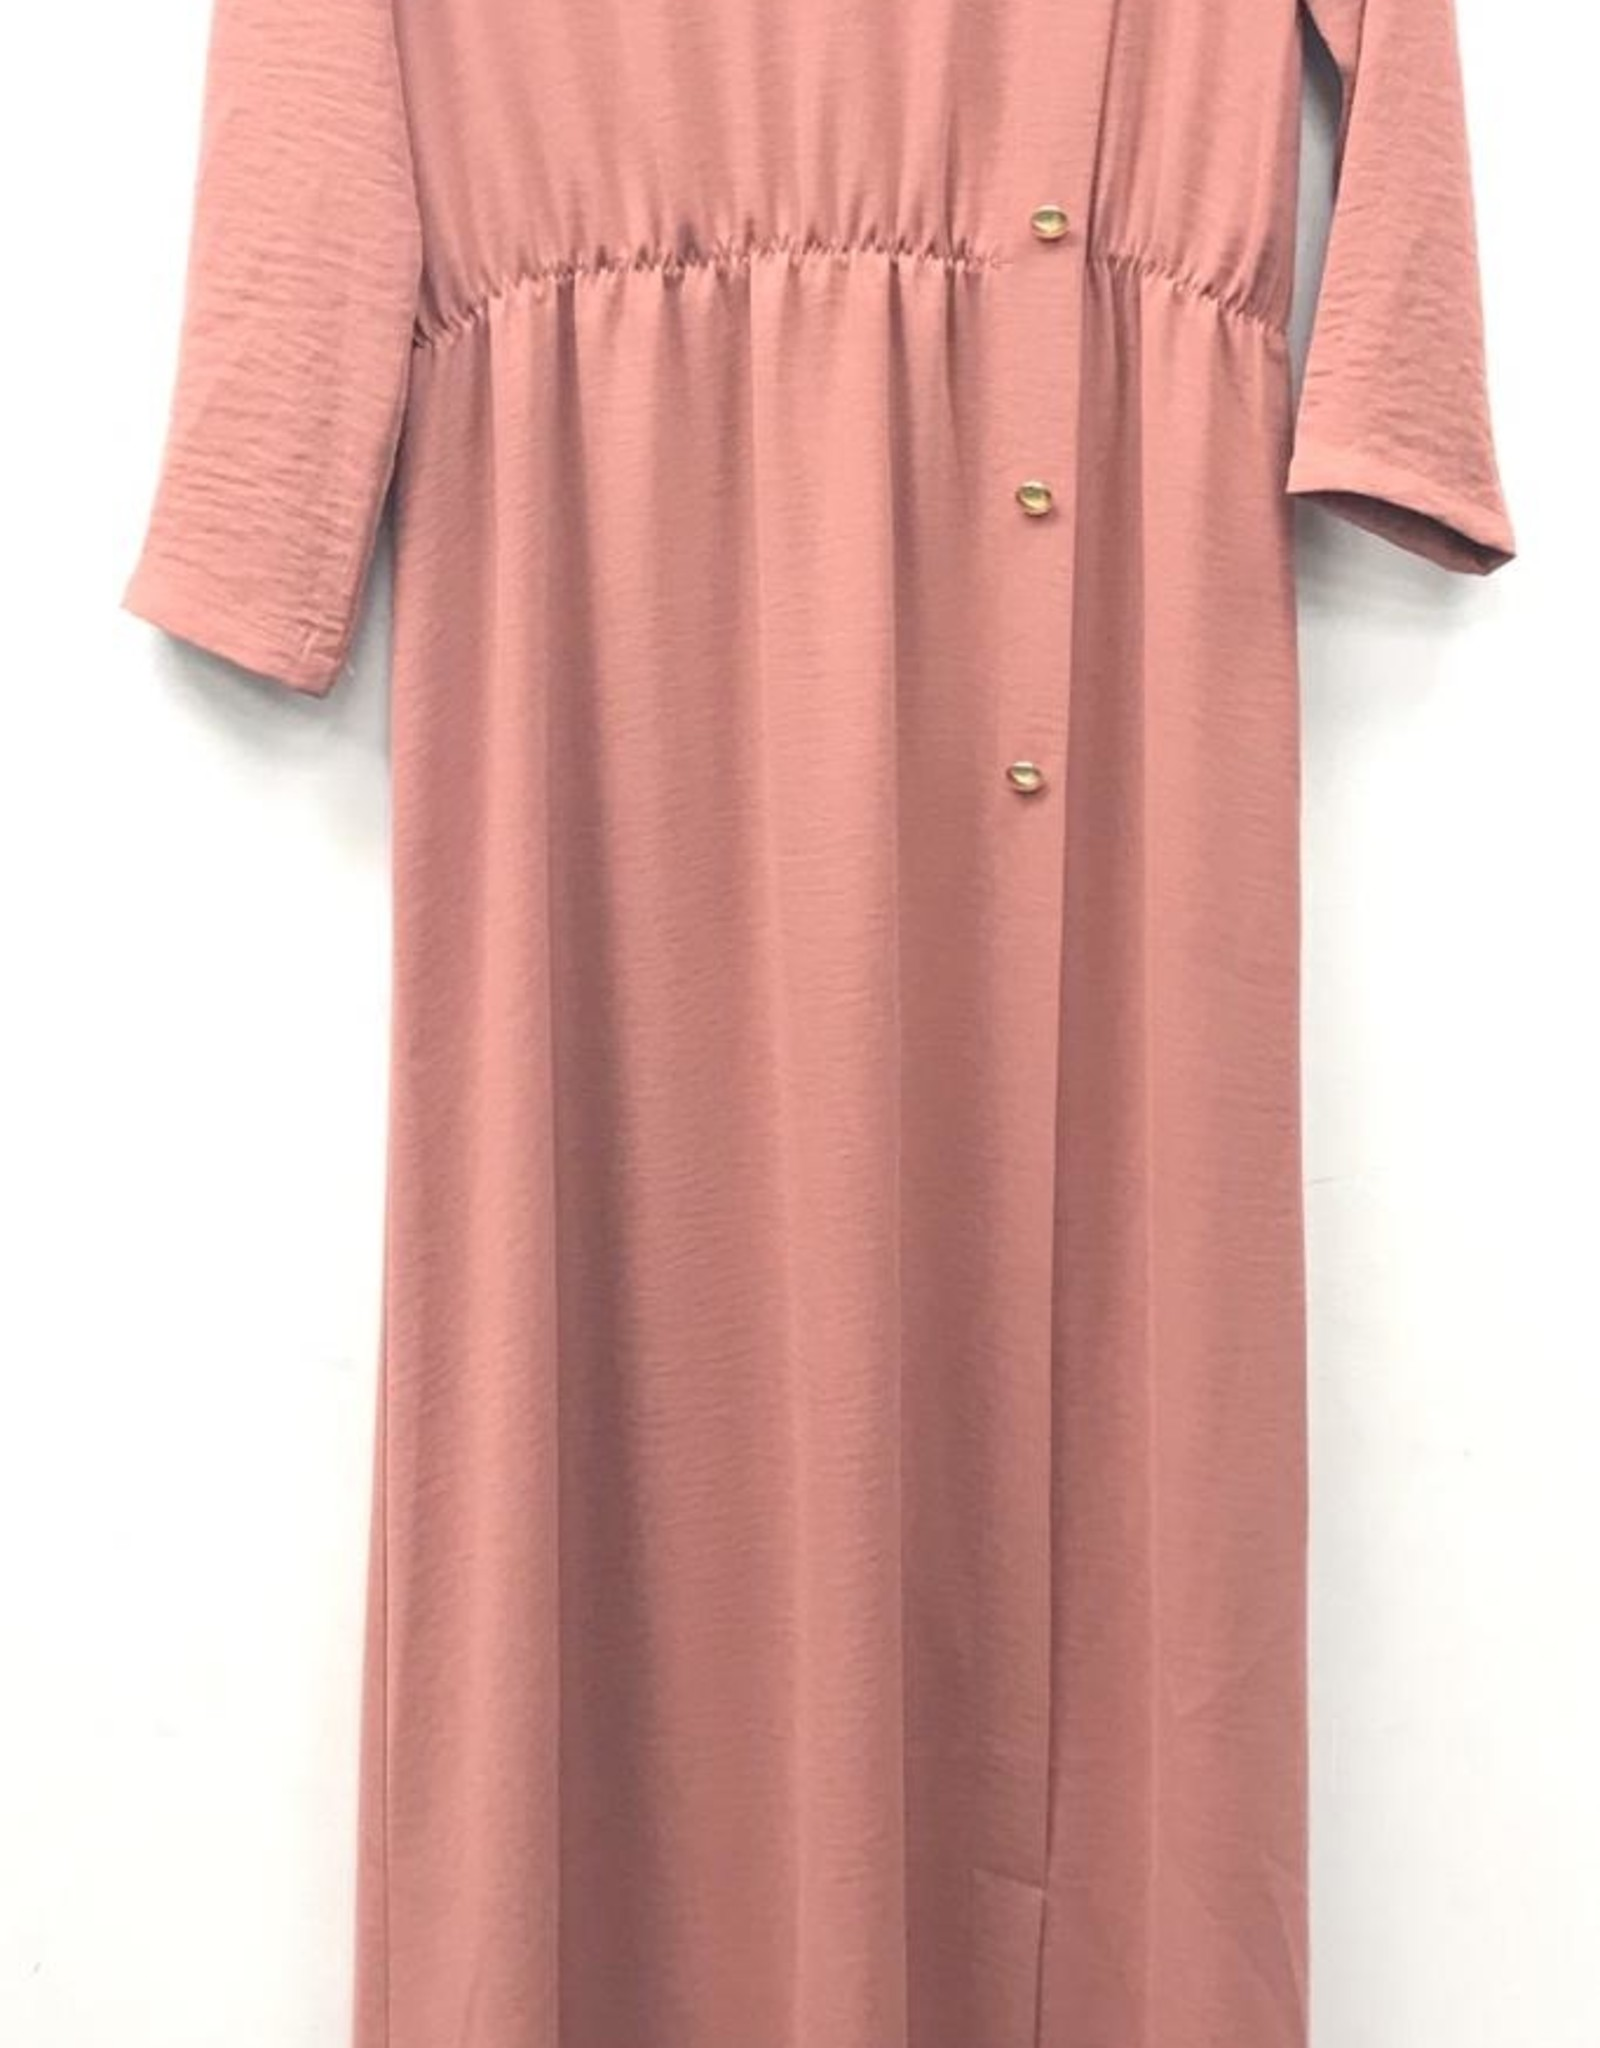 AC+CO AC+CO Robe with Gold Buttons